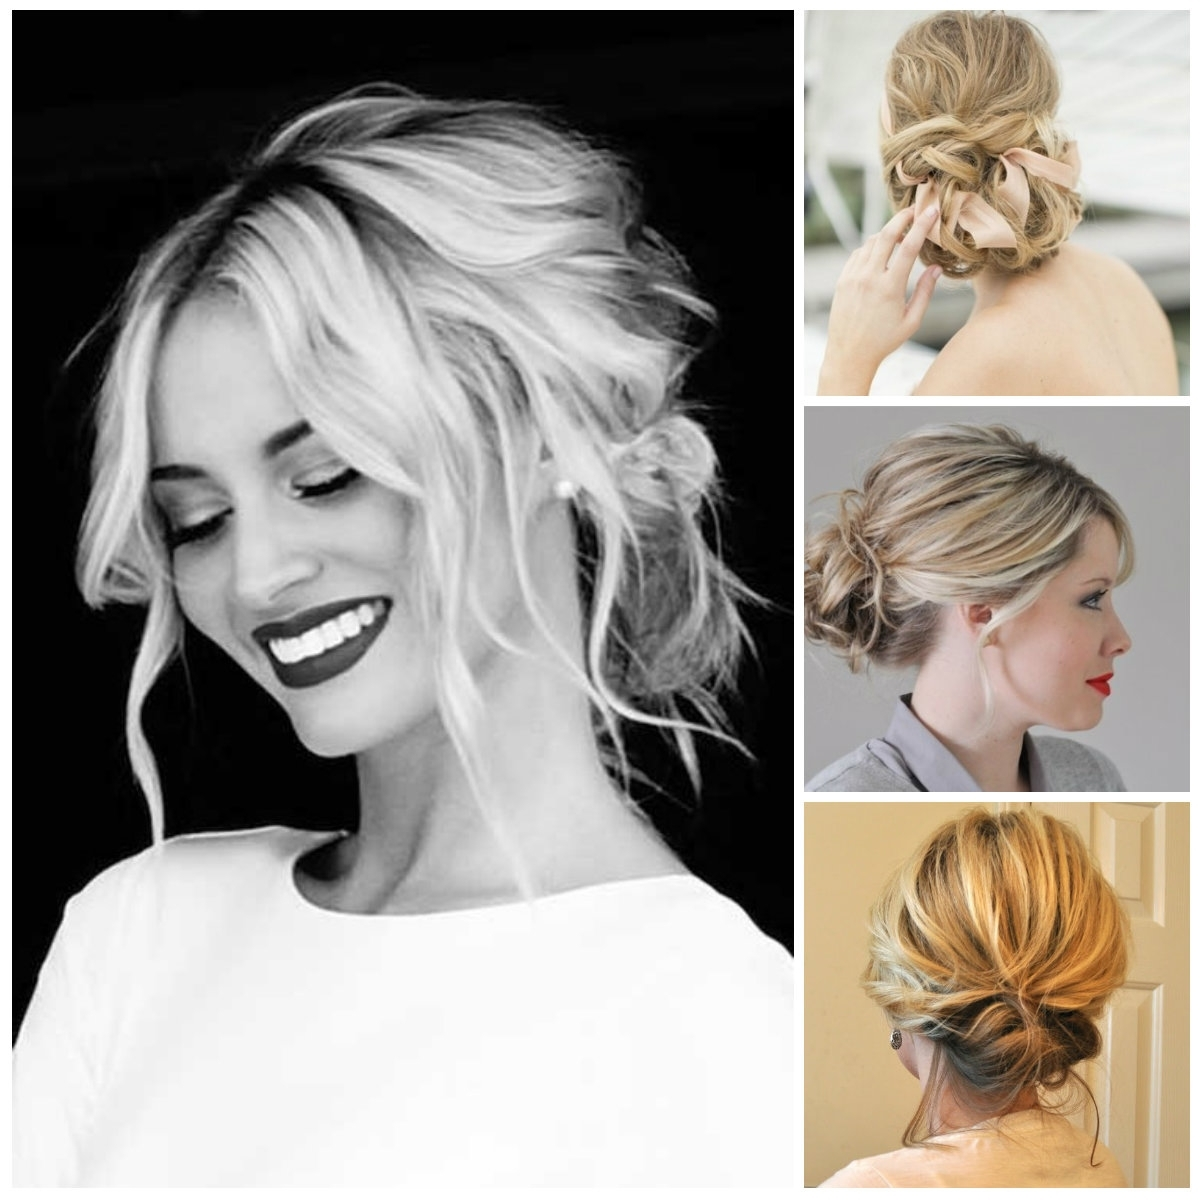 Updo Hairstyles For Medium Length – Hairstyle For Women & Man Regarding Medium Long Hair Updo Hairstyles (Gallery 4 of 15)